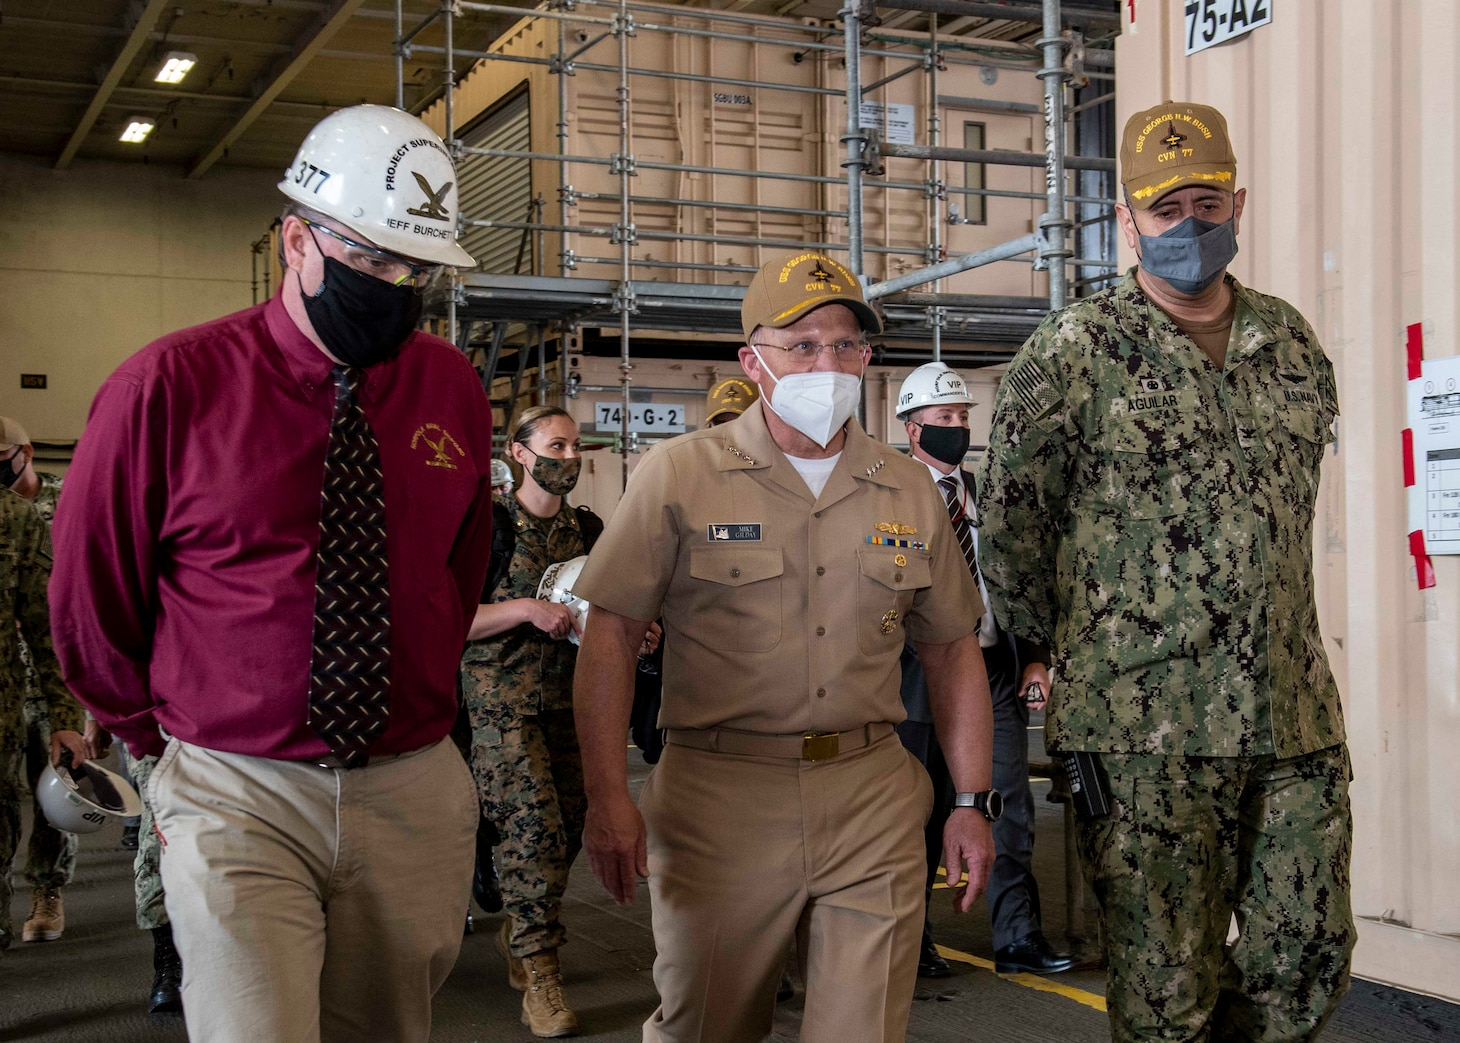 PORTSMOUTH, Va. (Apr 13, 2021) Admiral Mike Gilday, Chief of Naval Operations visits the aircraft carrier USS George H. W. Bush (CVN 77) as a part of his list to Norfolk Naval Shipyard. GHWB is currently in Norfolk Naval Shipyard for its Docking Planned Incremental Availability. (U.S. Navy photo by Mass Communication Specialist 3rd Class Ryan Pitt)